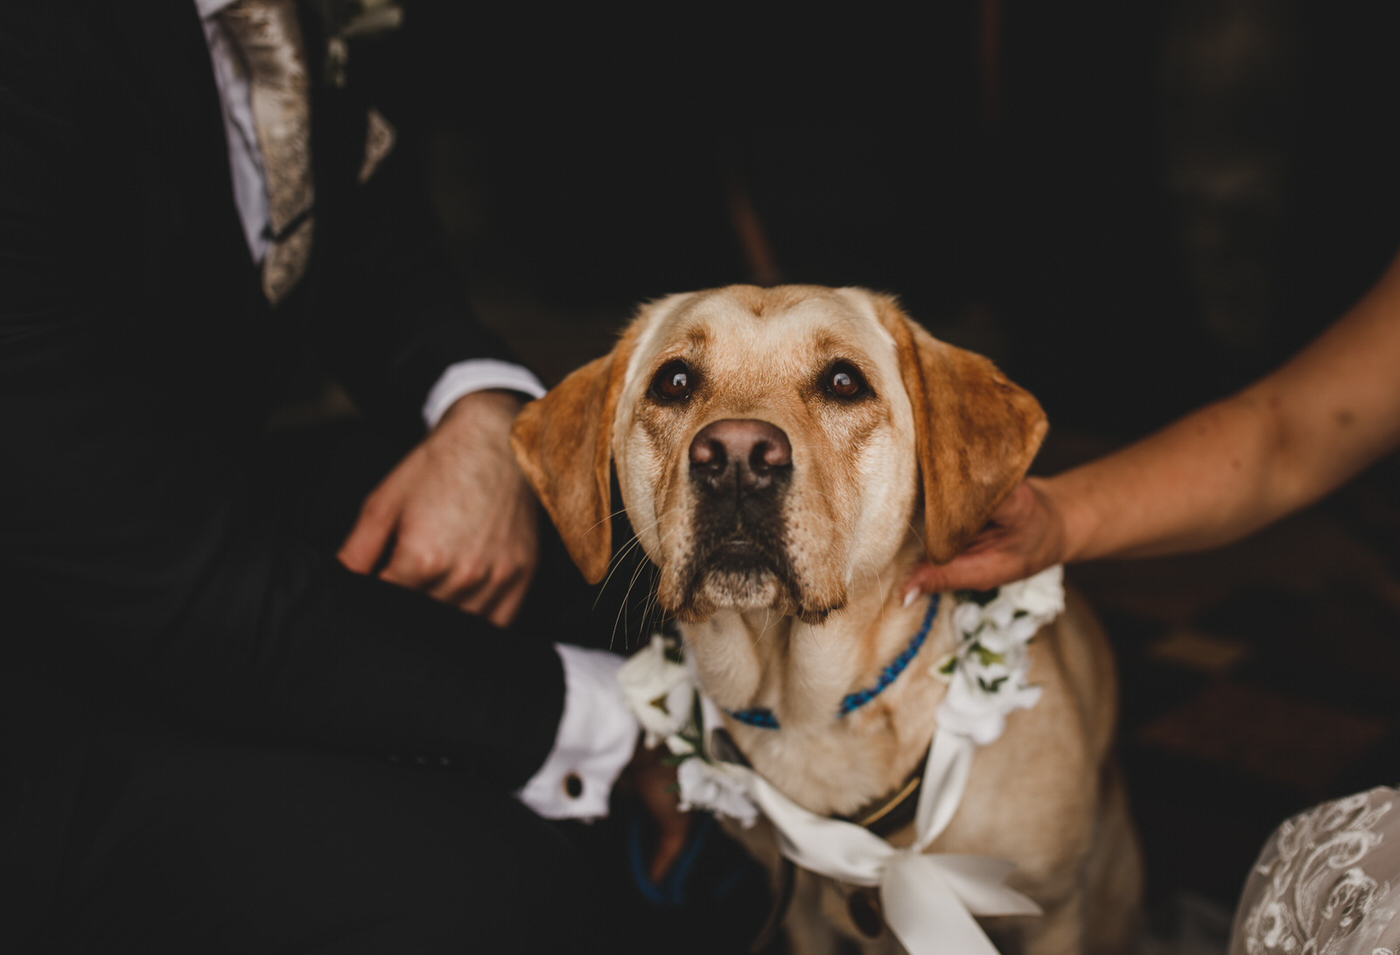 The newlyweds great their pet Labrador at the Church